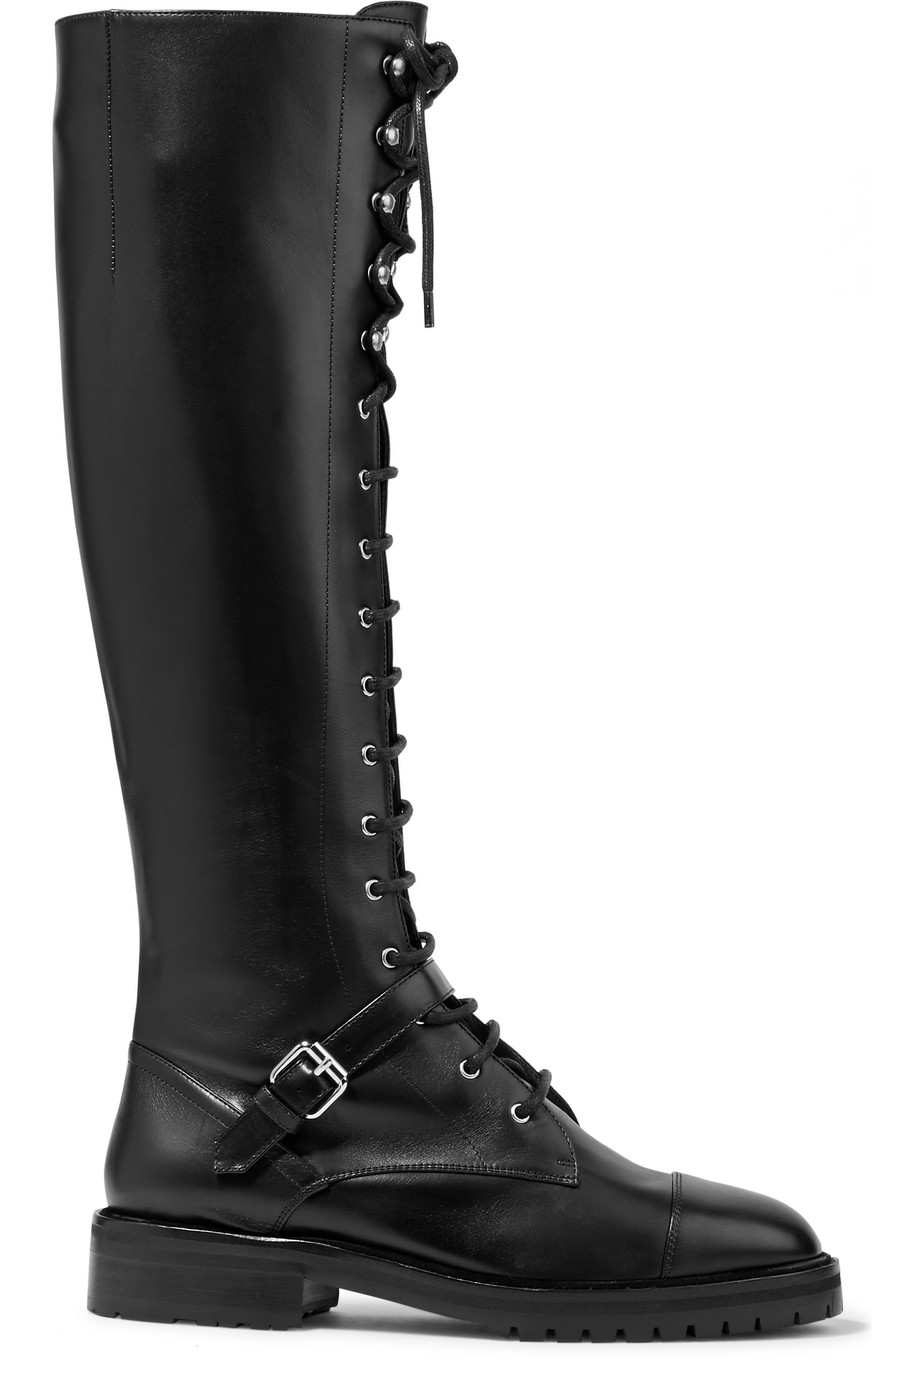 Over-the-knee boots Tabitha Simmons buy Over-the-knee boots Tabitha Simmons internet shop